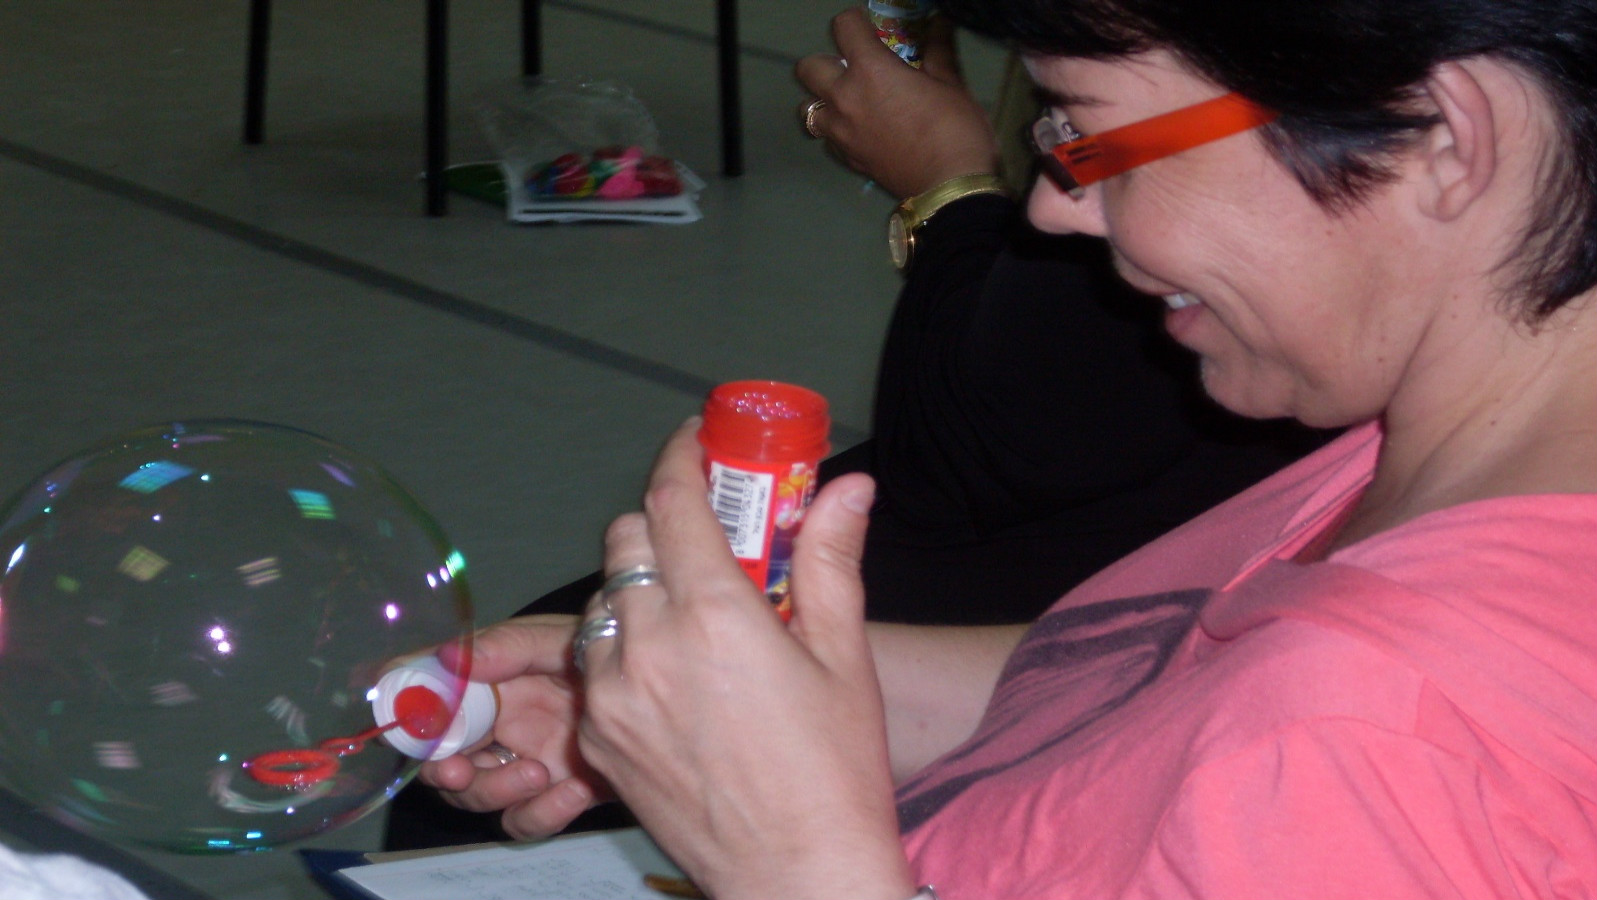 A training participant practices the breathing technique by blowing bubbles. Photo courtesy of ACR